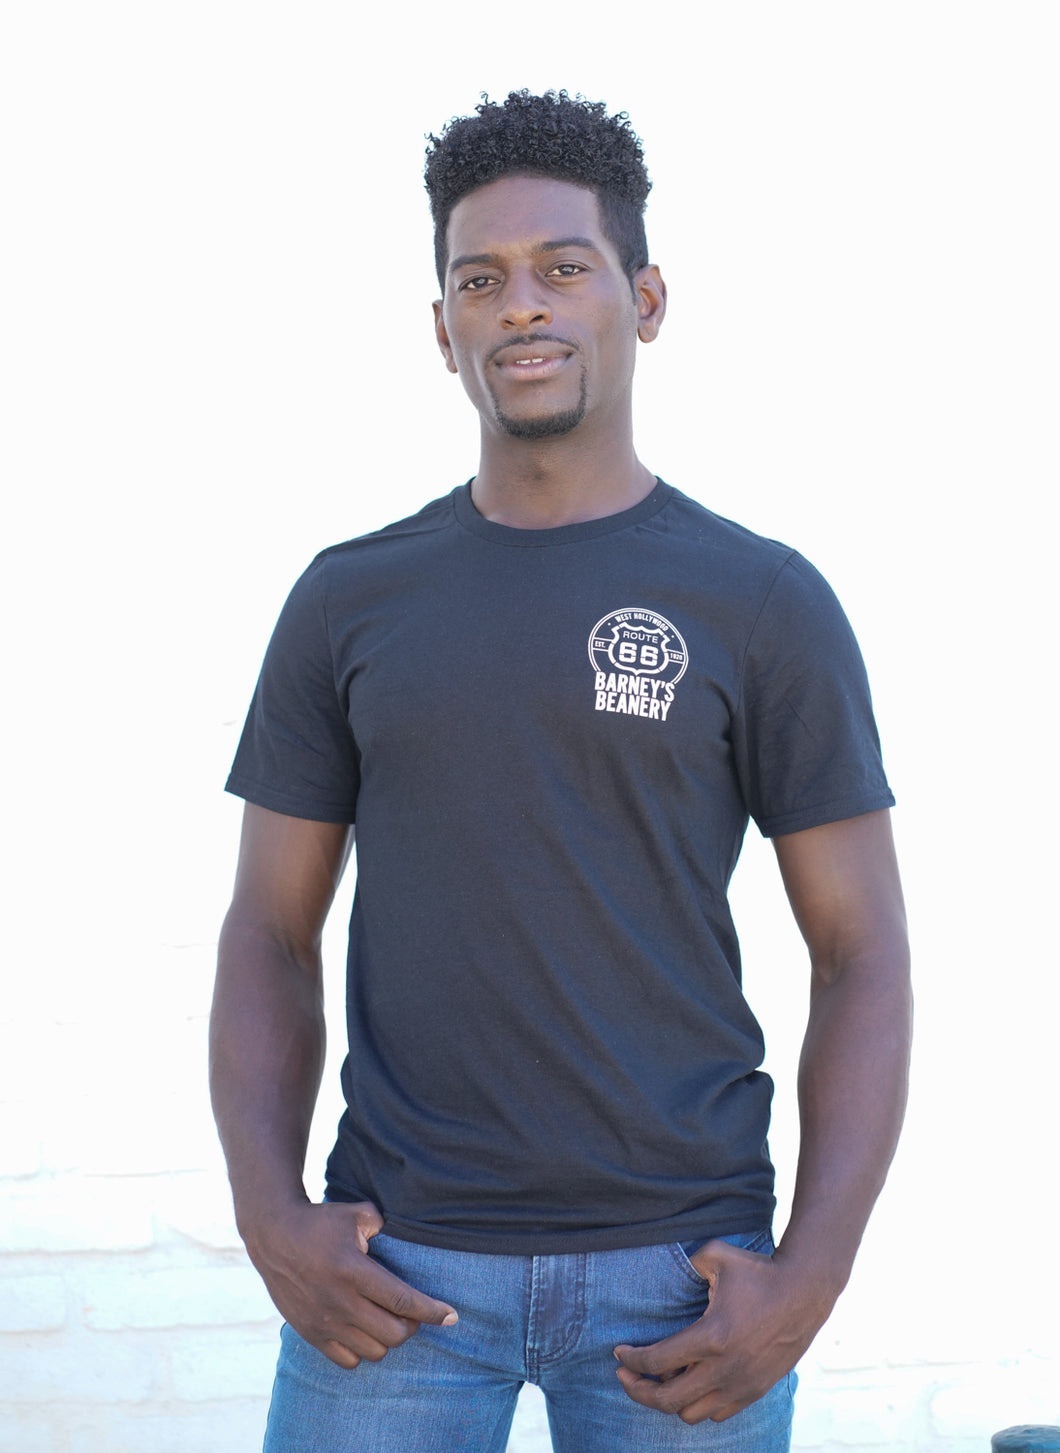 Man wearing black Barney's Beanery shirt, from the front, against a white wall